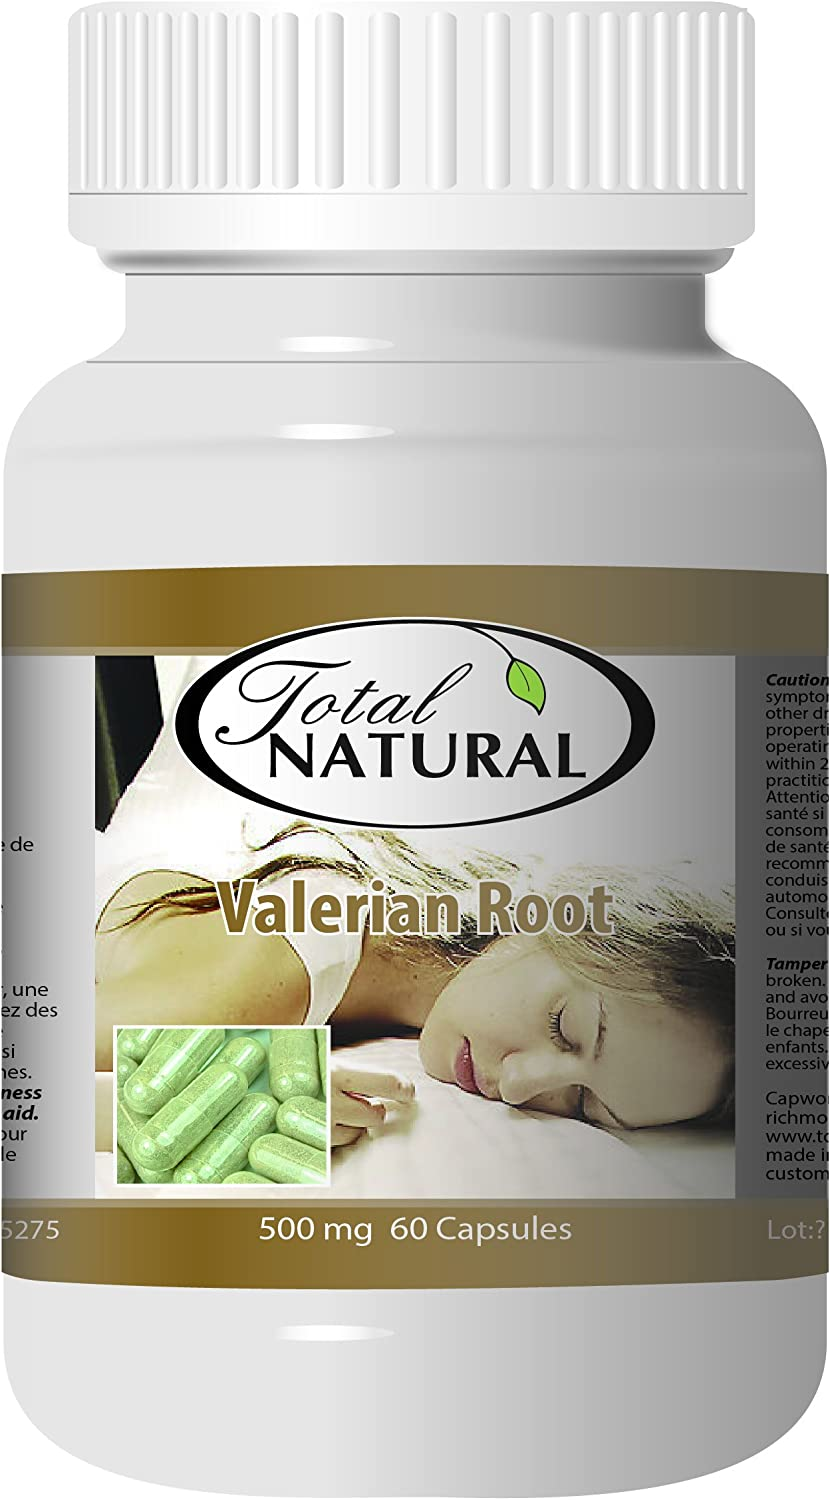 Max 56% OFF Valerian Root 500mg 60c 5 Bottles by Cont Sleep Natural 4 years warranty Total